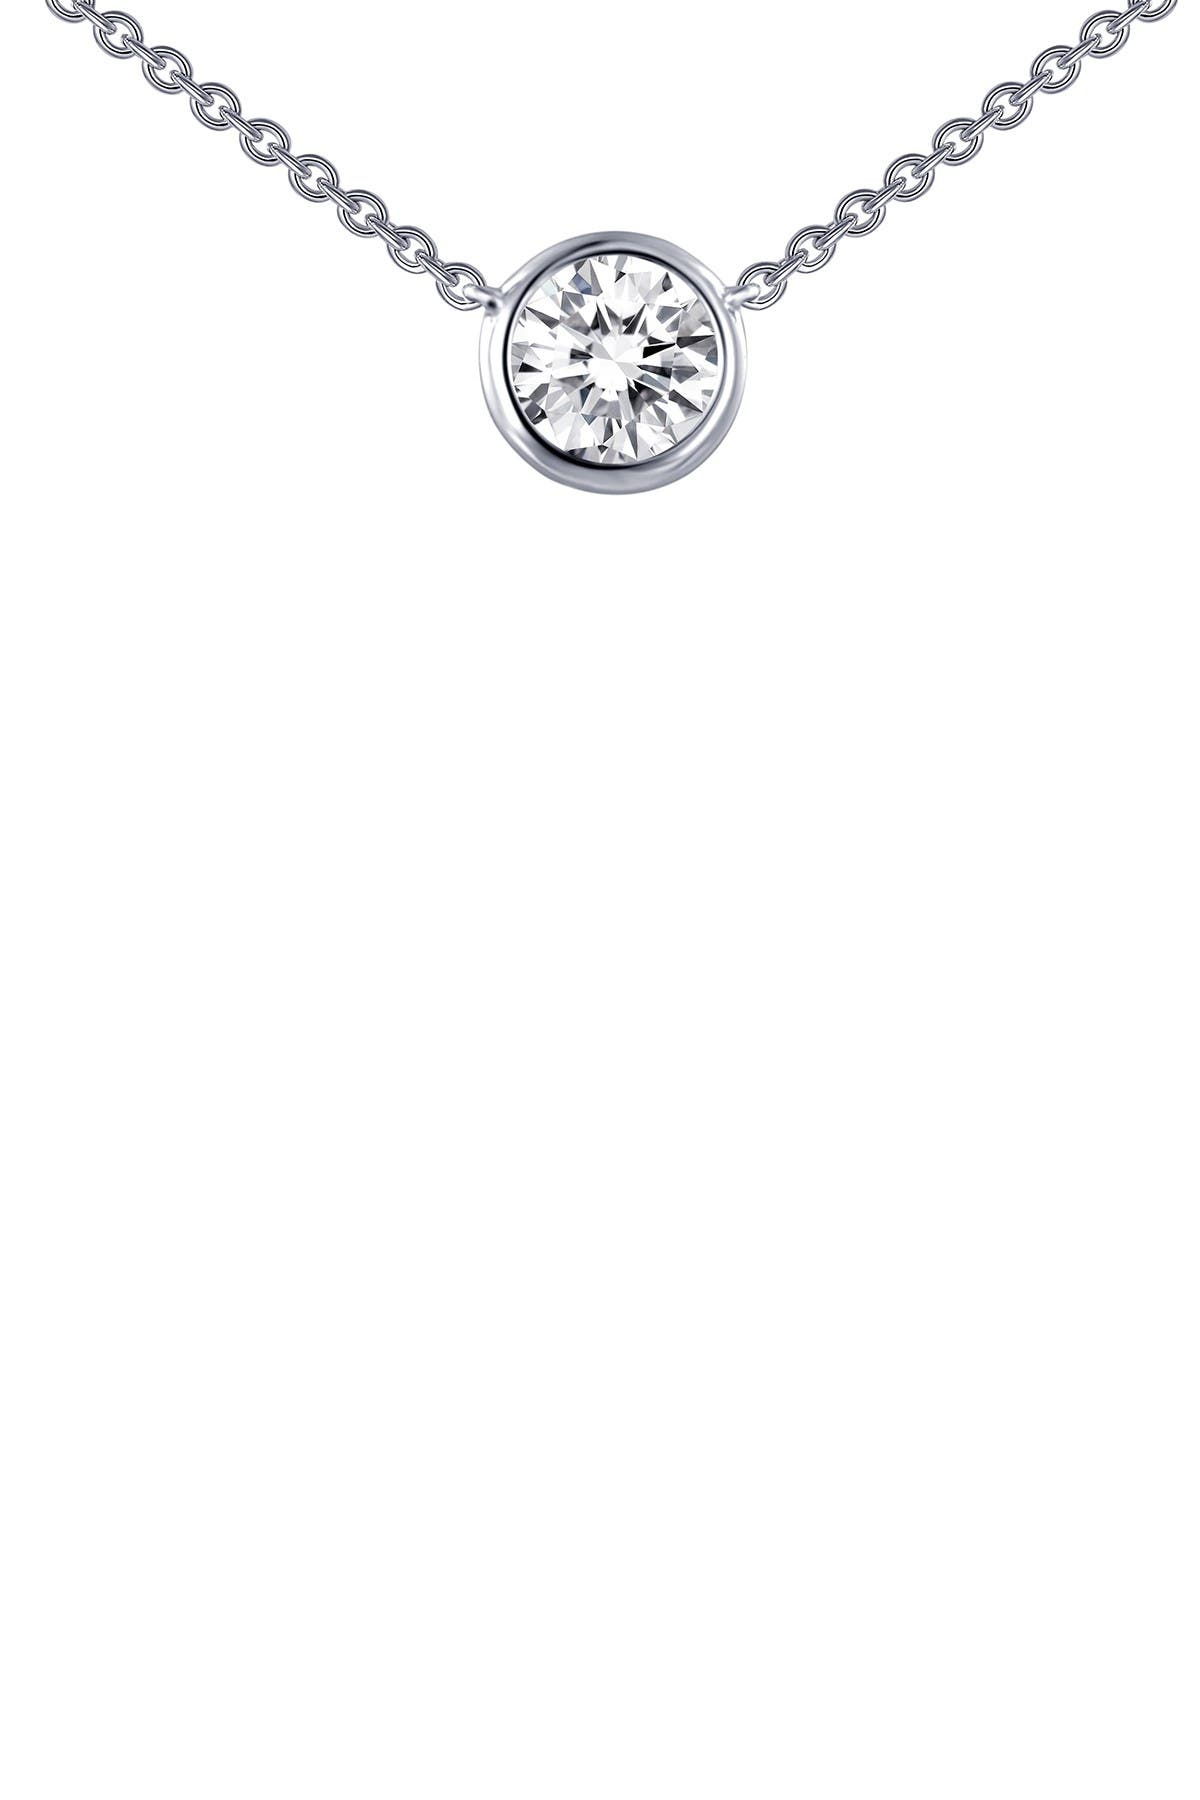 Image of LaFonn Platinum Plated Sterling Silver Simulated Diamond Bezel Solitaire Necklace